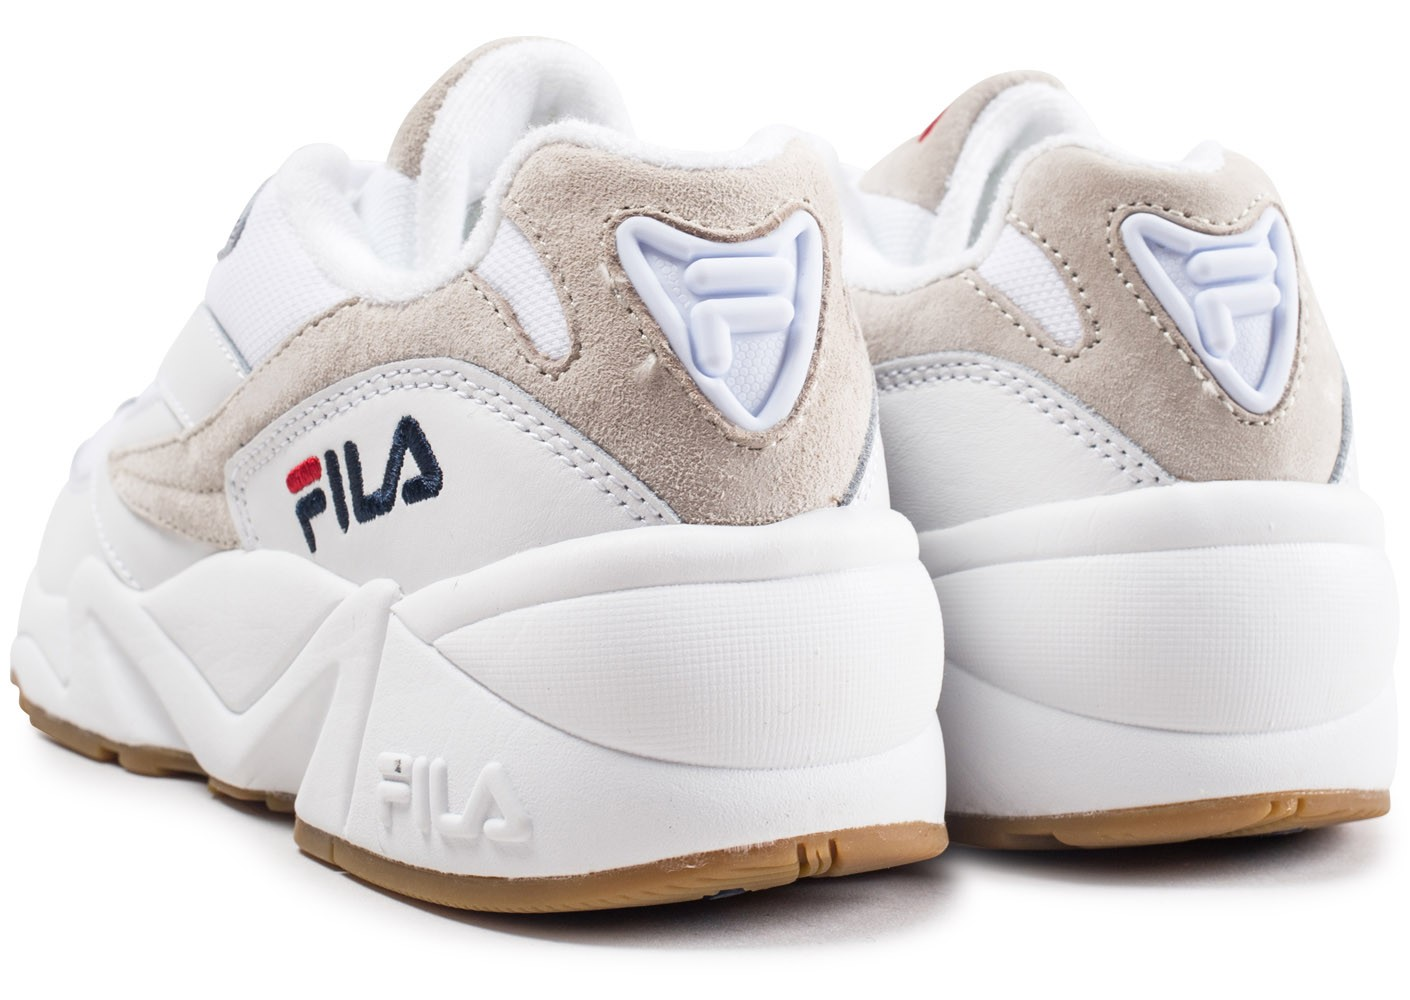 the latest d9a5e adf49 Fila Fila blanche 94 Low Chaussures homme Chausport Baskets EpEqrwxz